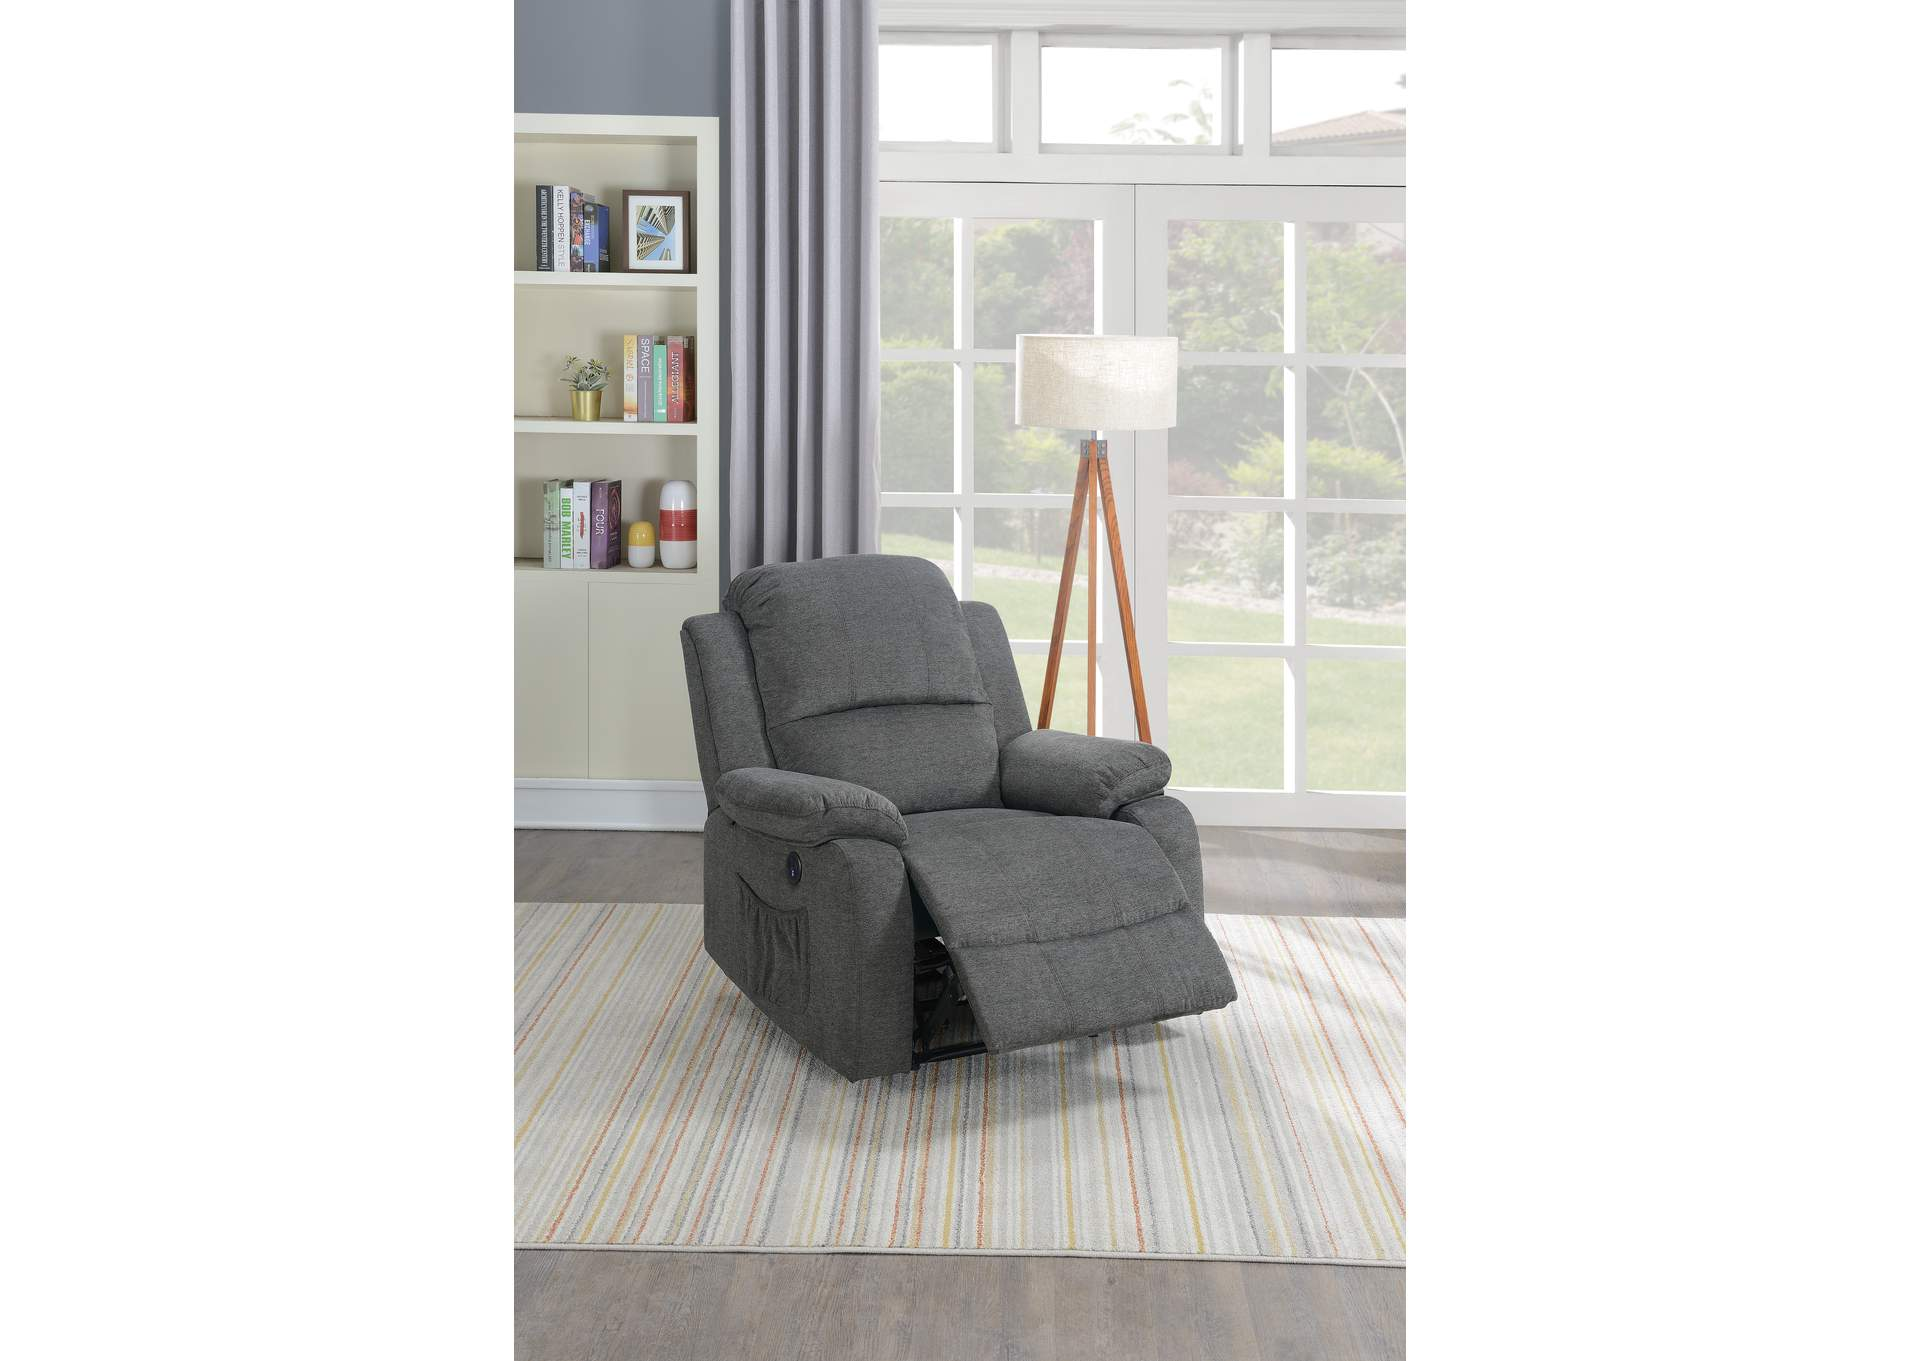 Taiyus Slate Velvet Power Recliner,Poundex